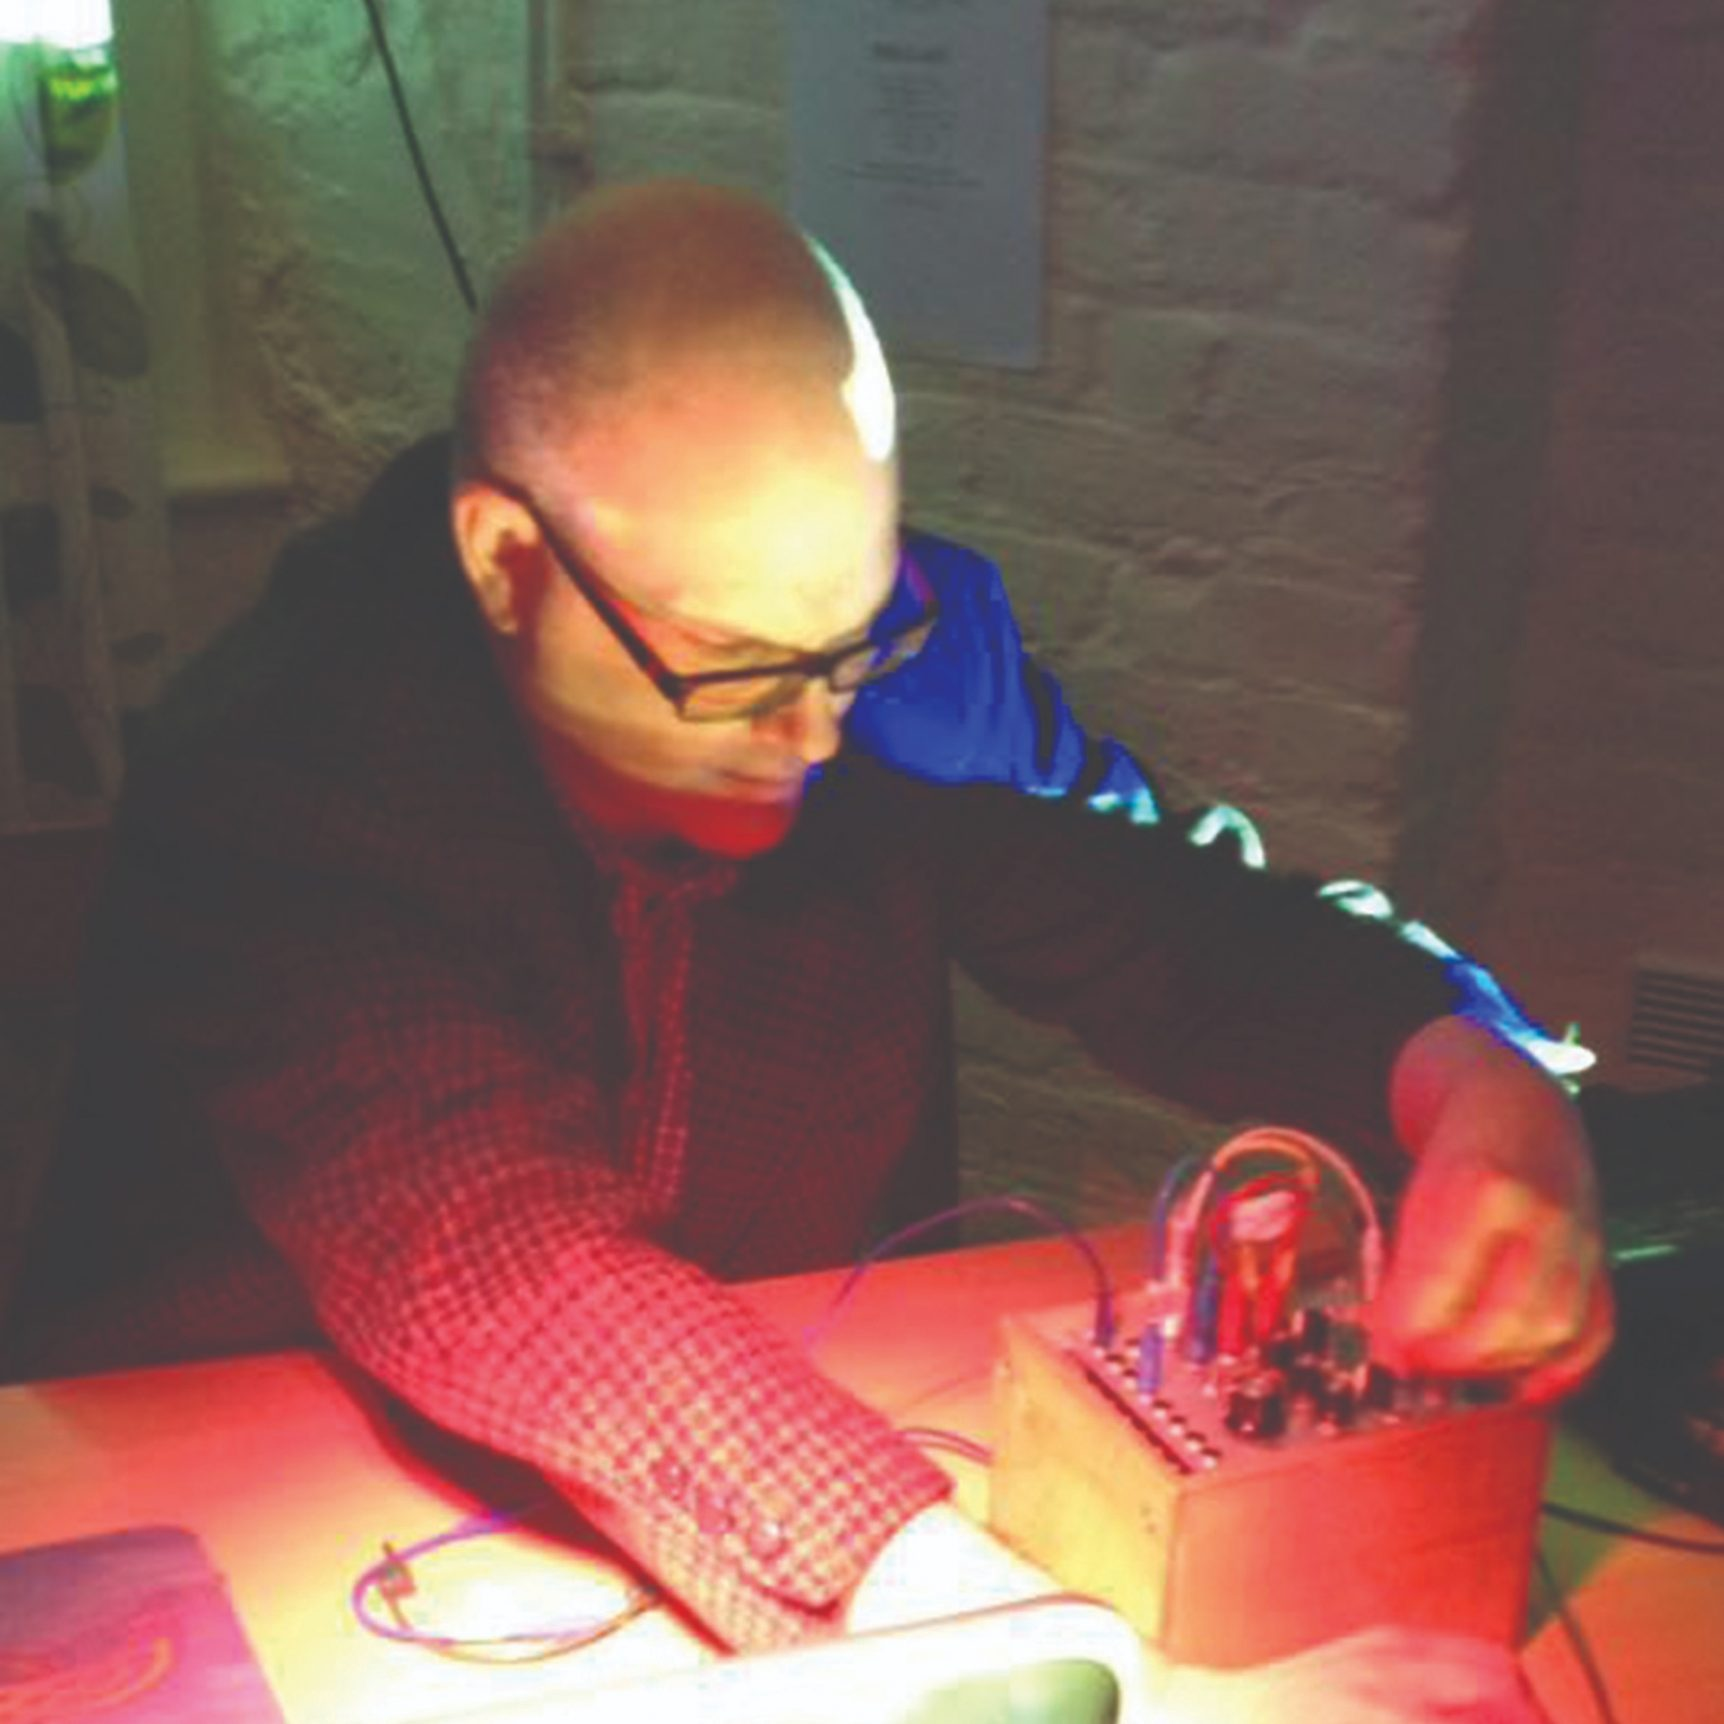 Dafydd Roberts (white man with shaved head, wearing glasses and a jacket) altering the settings on a small, electronic device